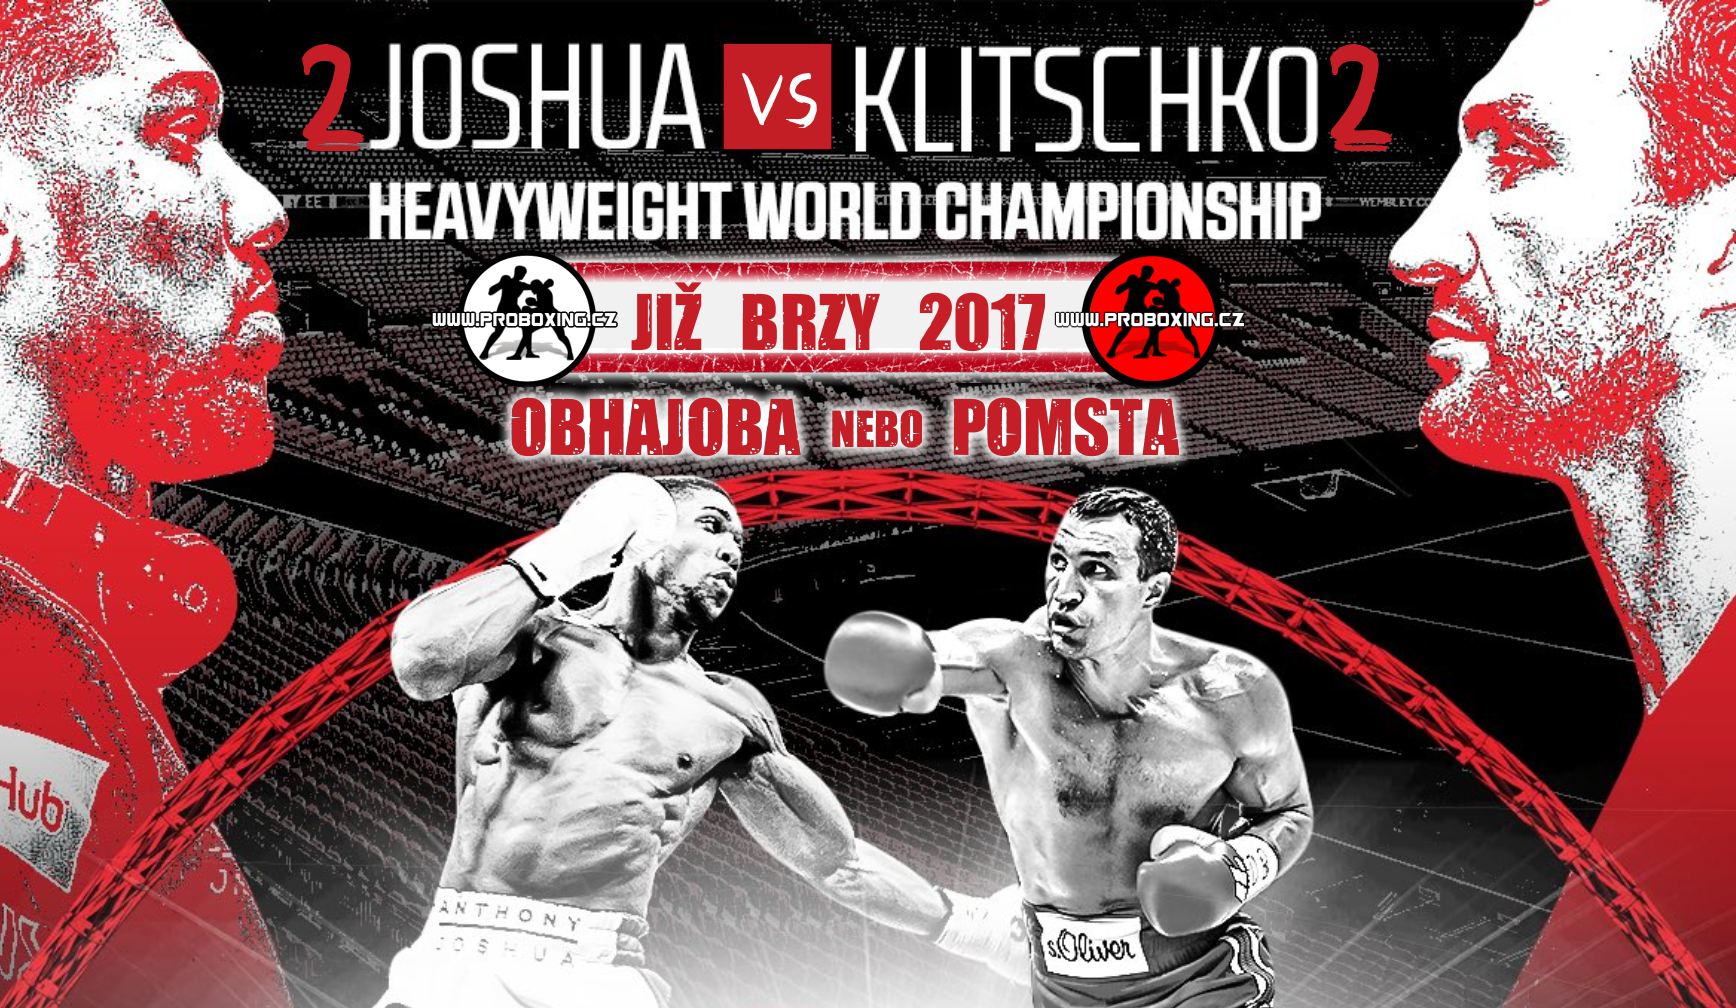 Anthony Joshu vs Wladimir Klitschko 2